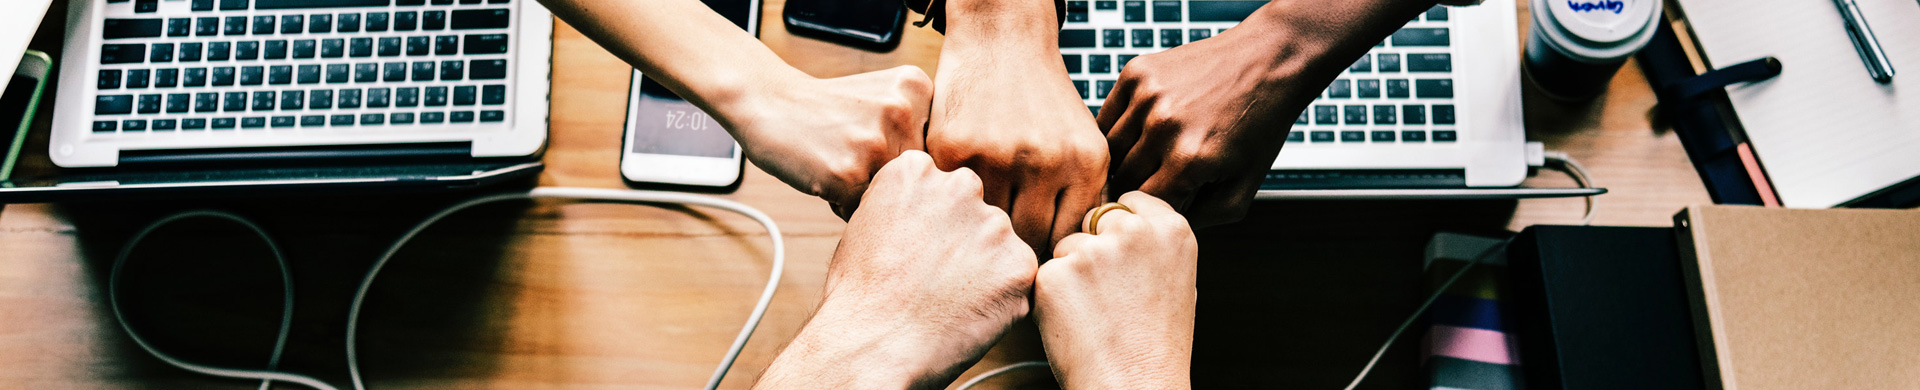 5 people fist bumping